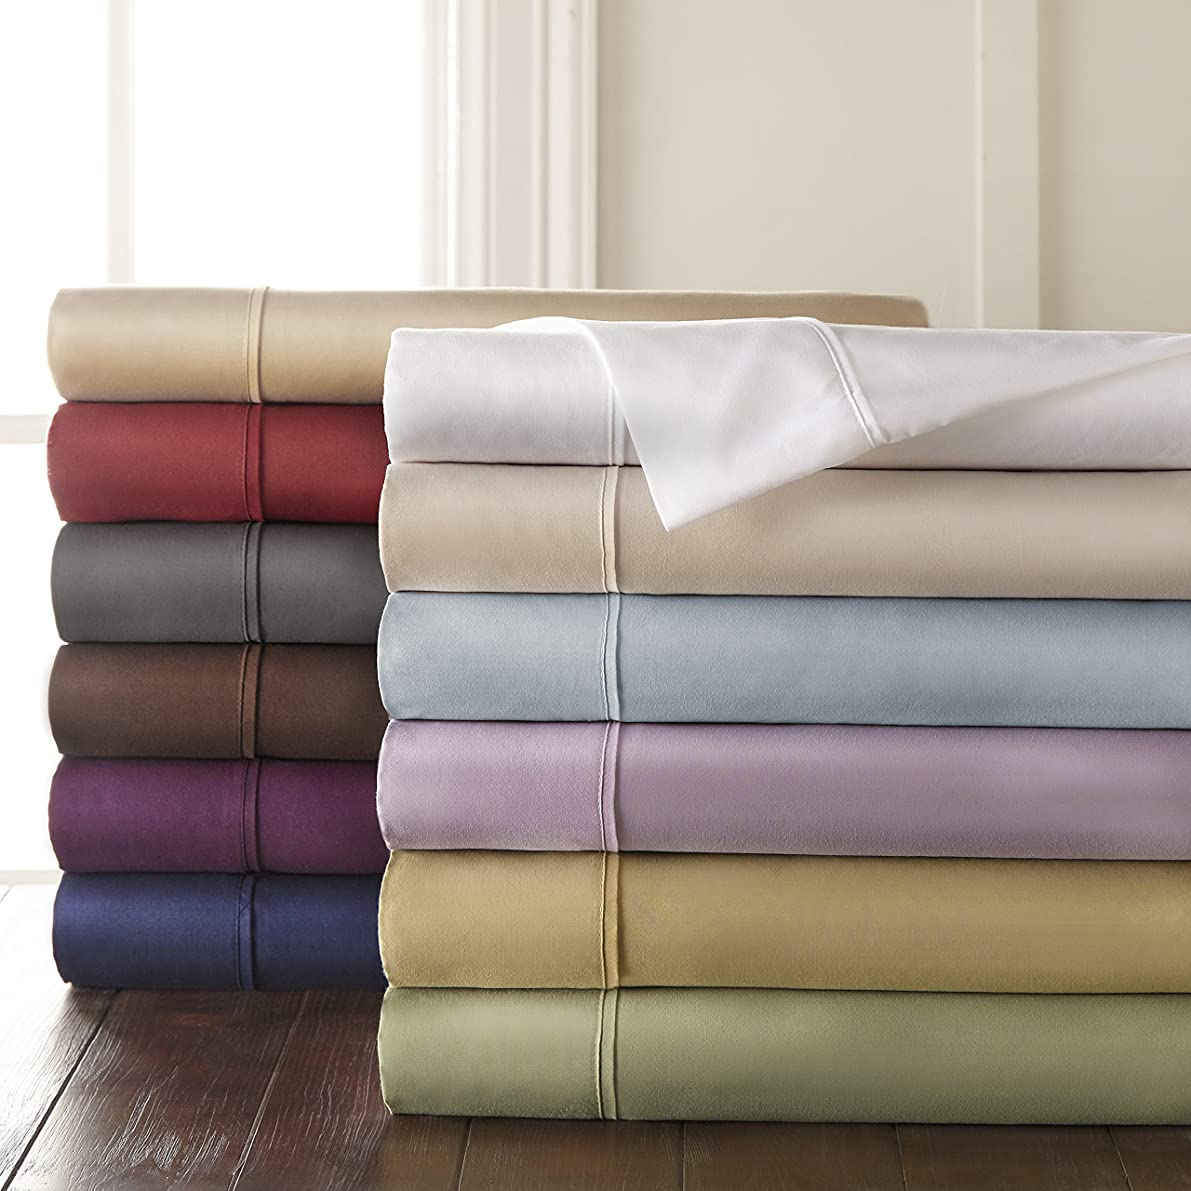 HC Collection 1500 Thread Count Egyptian Quality 2pc Set of Pillow Cases, Silky Soft & Wrinkle Free (ALL COLORS/SIZES)-King Size, White